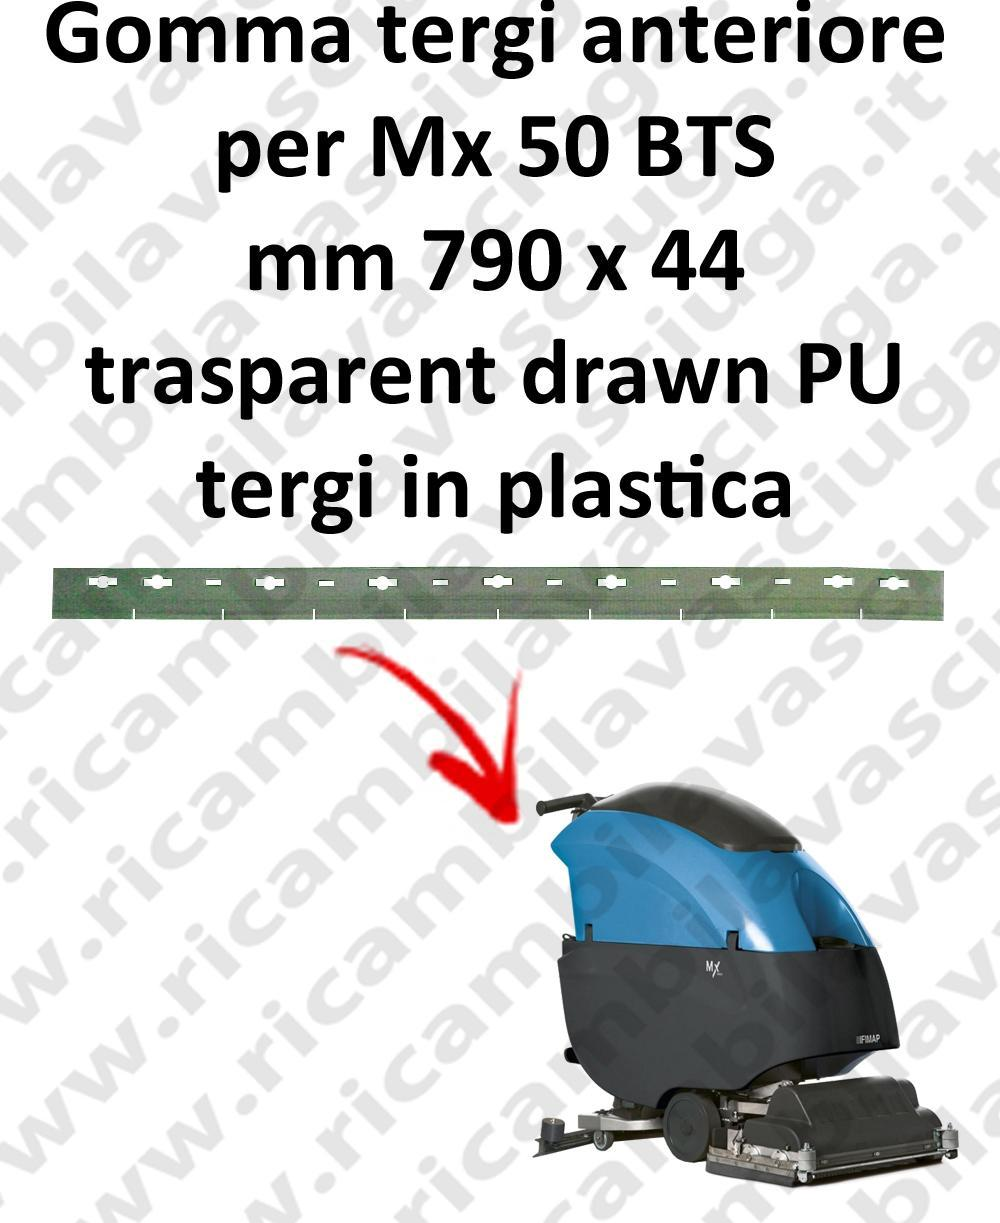 Mx 50 BTS Front Squeegee rubber for FIMAP accessories, reaplacement, spare parts,o scrubber dryer squeege